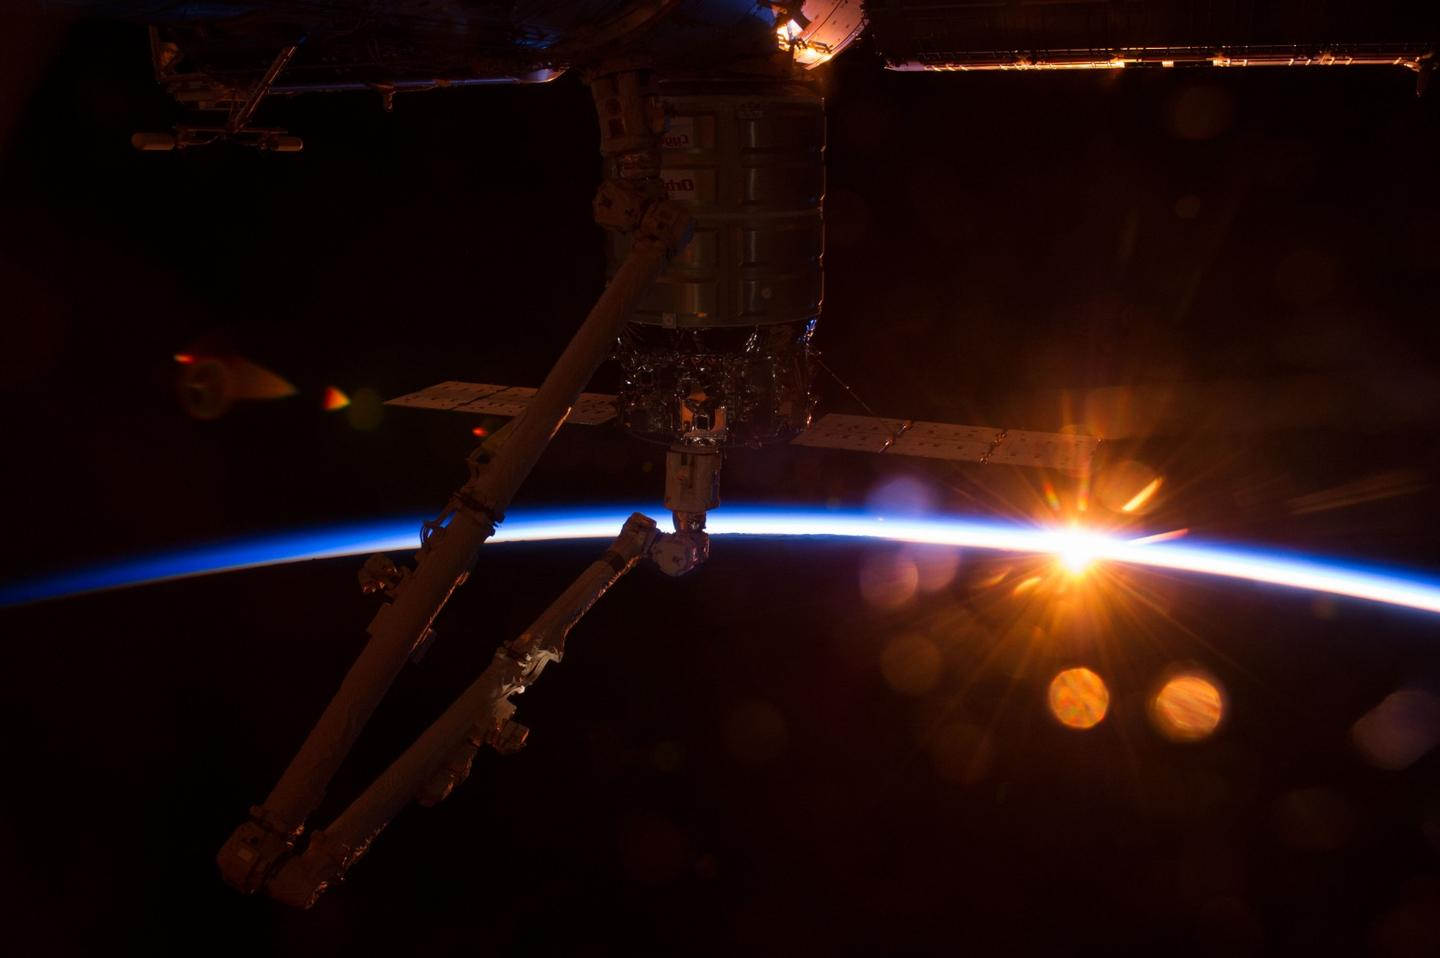 The new program will include visits by private astronauts to the ISS